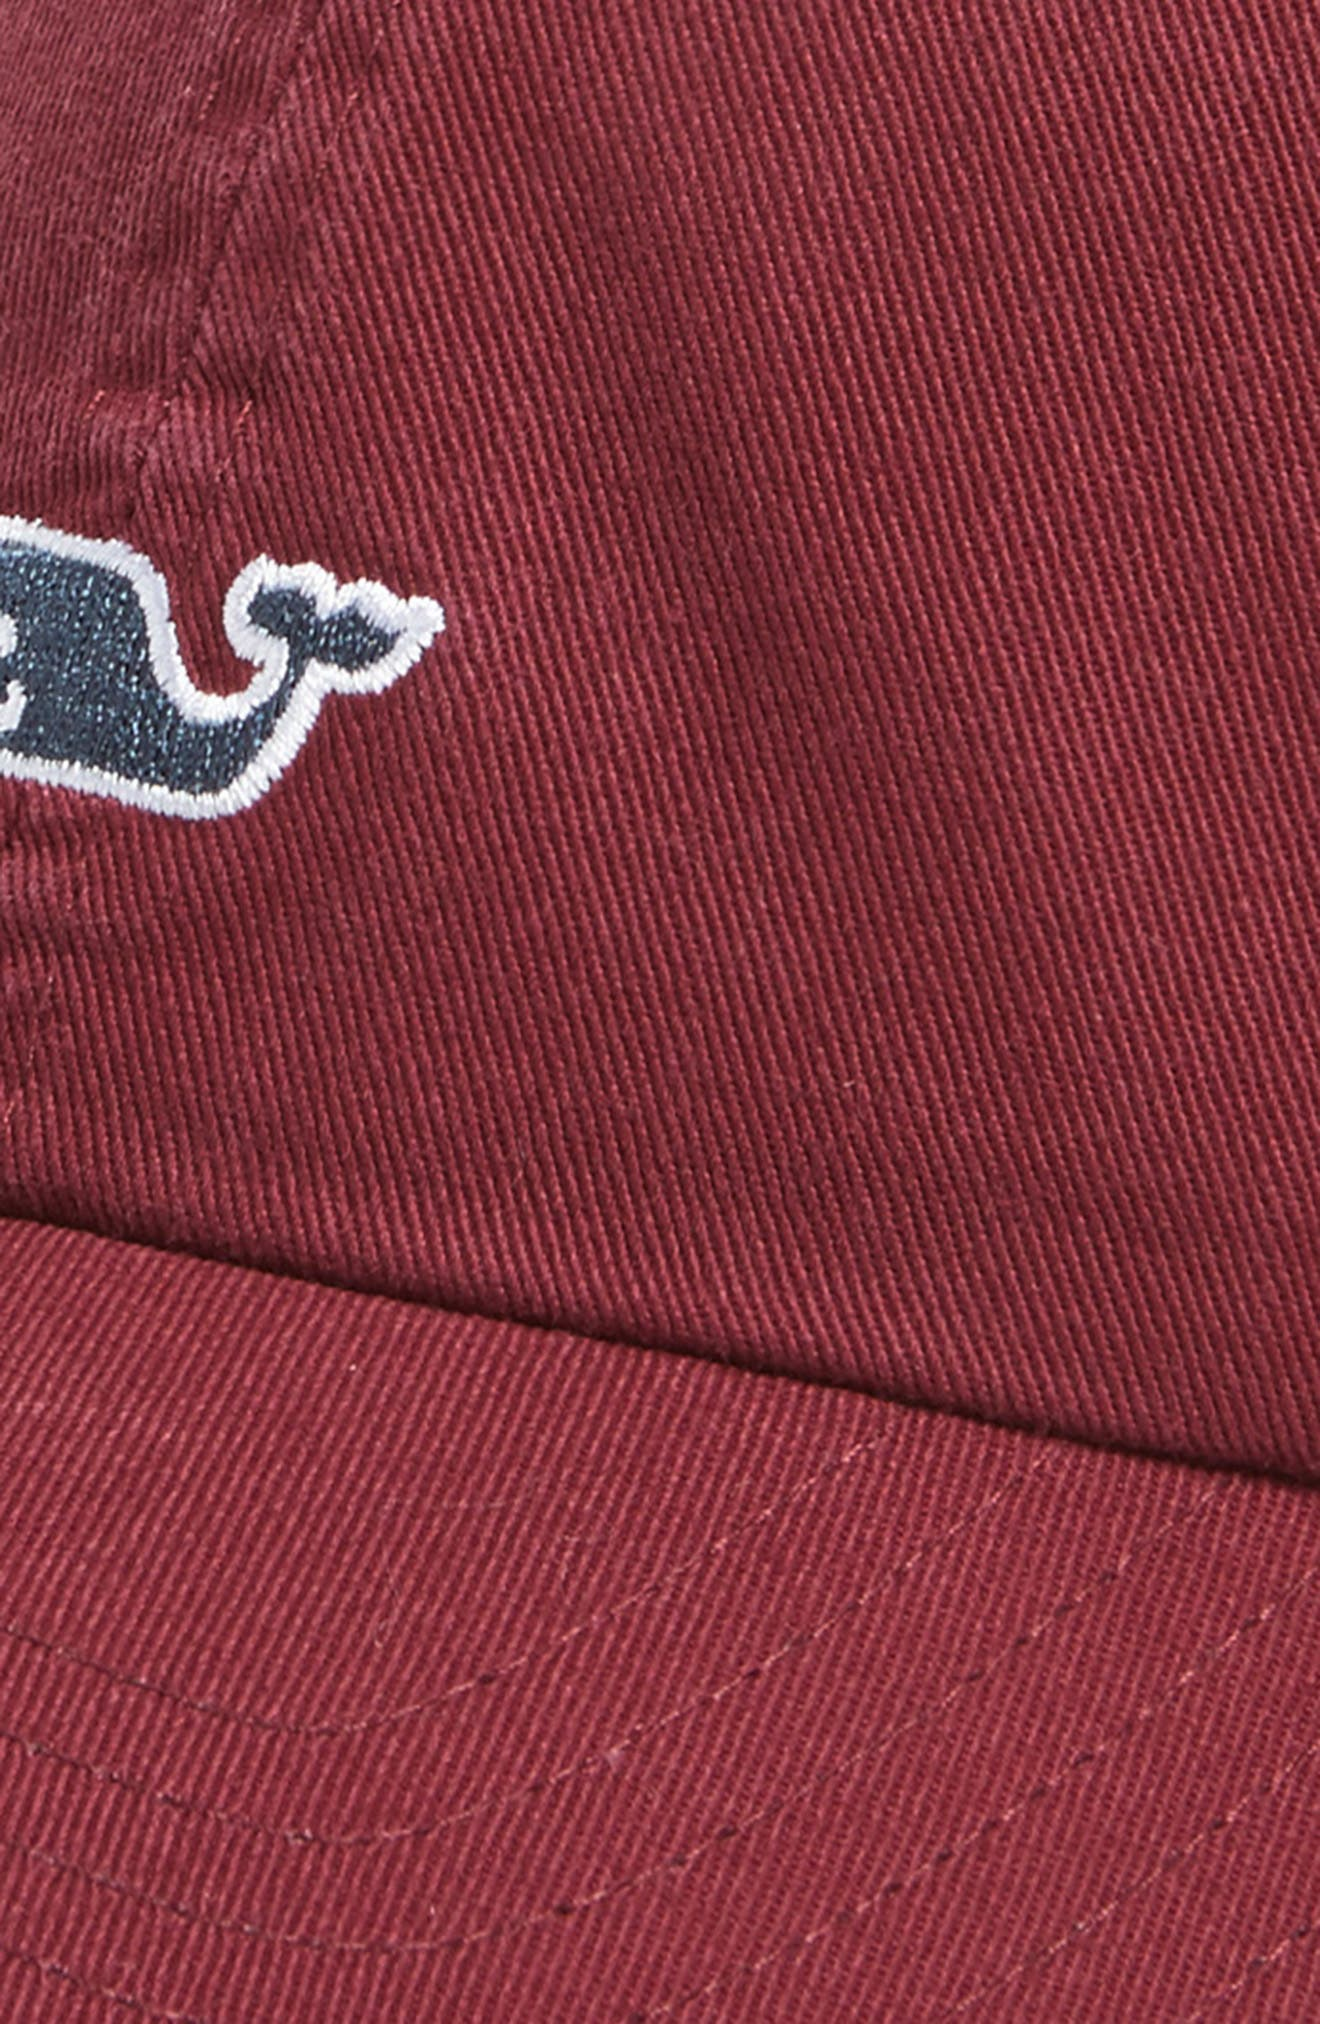 Alternate Image 3  - vineyard vines Whale Logo Cap